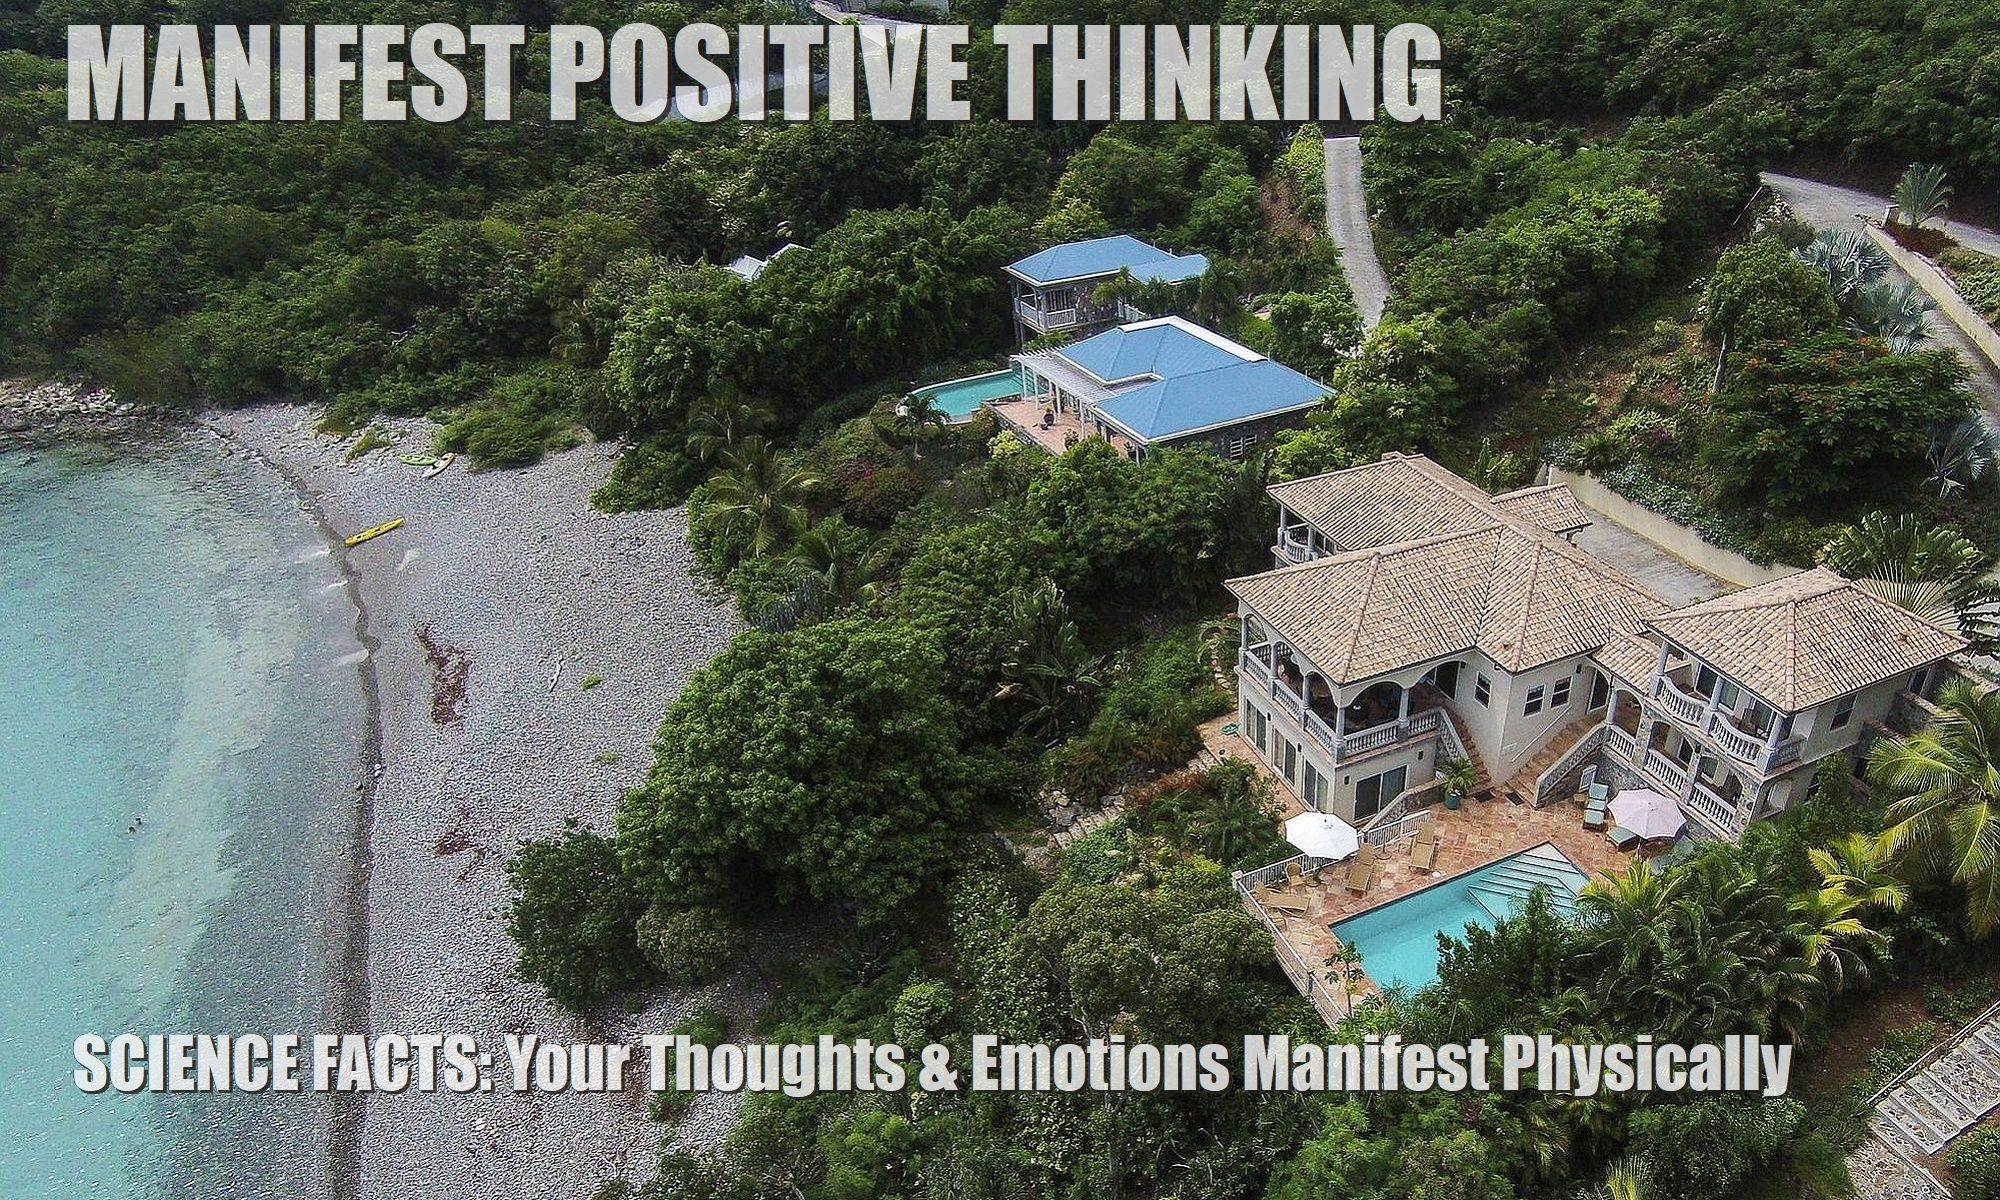 How-to-materialize-positive-events-through-focus-thinking-2000